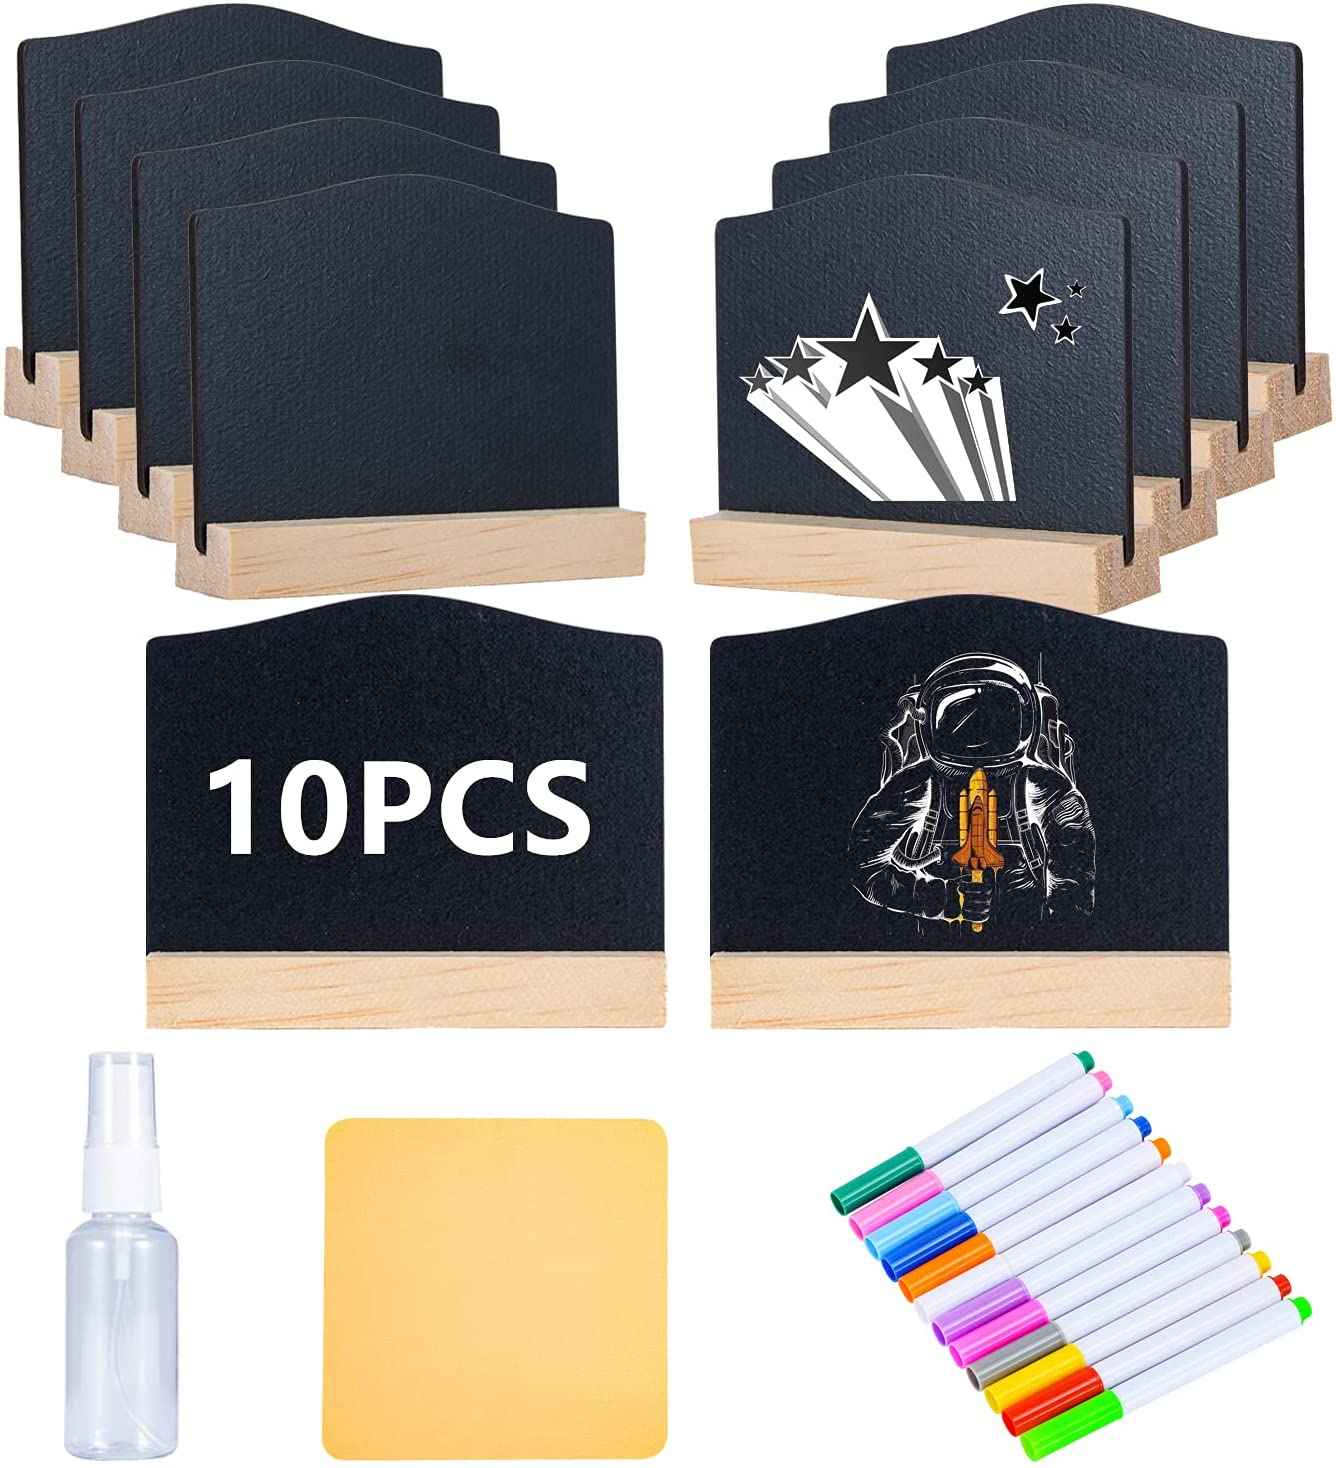 Reusable 10 Pcs Double-Sided use Mini Chalkboard Signs with Easel Stand for Food Labels, Message Board Signs,Weddings Place Cards, Birthday Parties,Table Numbers,Plants,Special Event Decorations